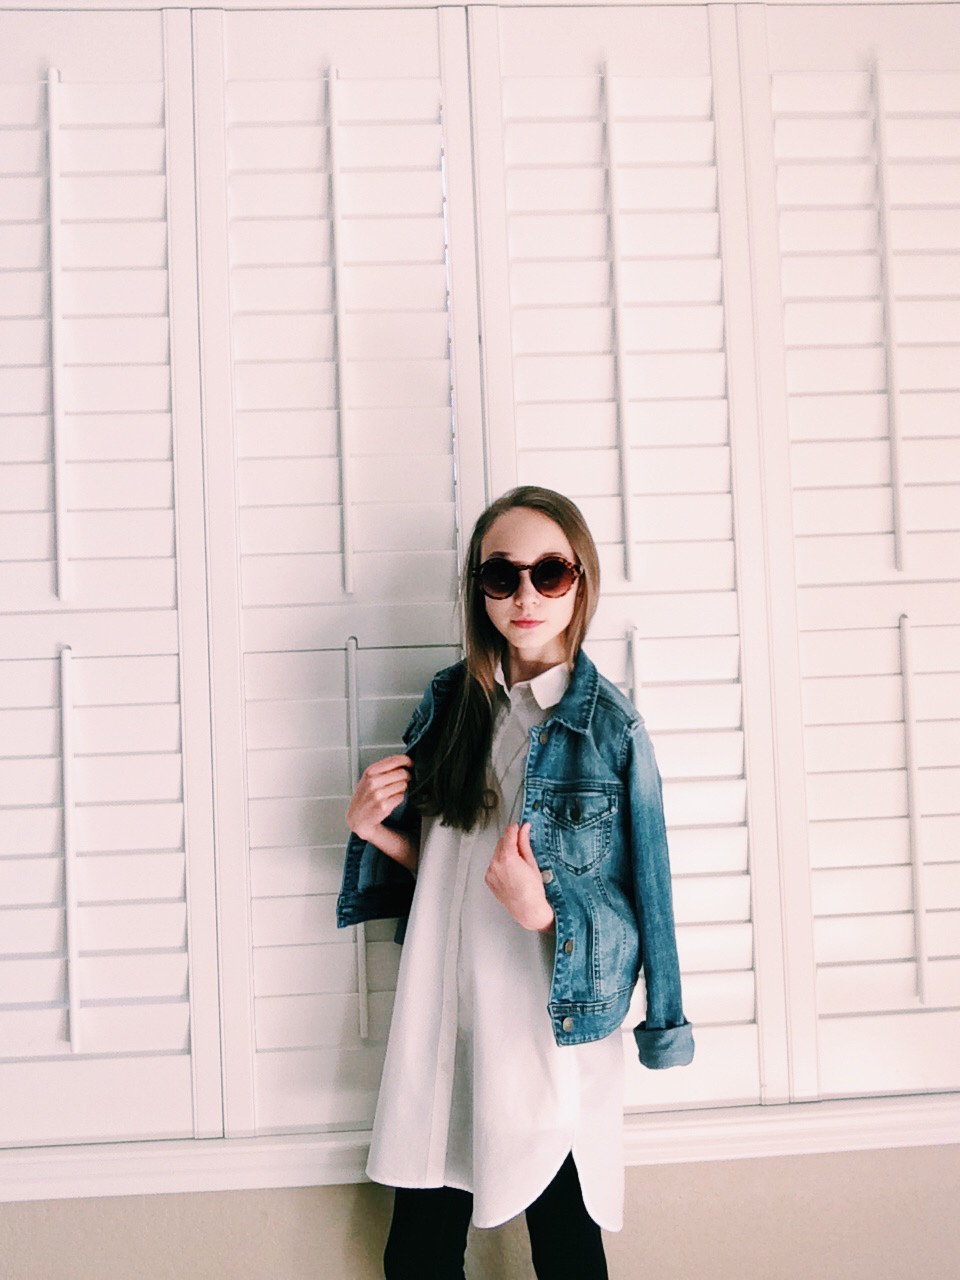 Shirt: Madewell, Pants: Old Navy, Necklace: Madewell, Jean Jacket: Brass Plum, Sunnies: Forever 21